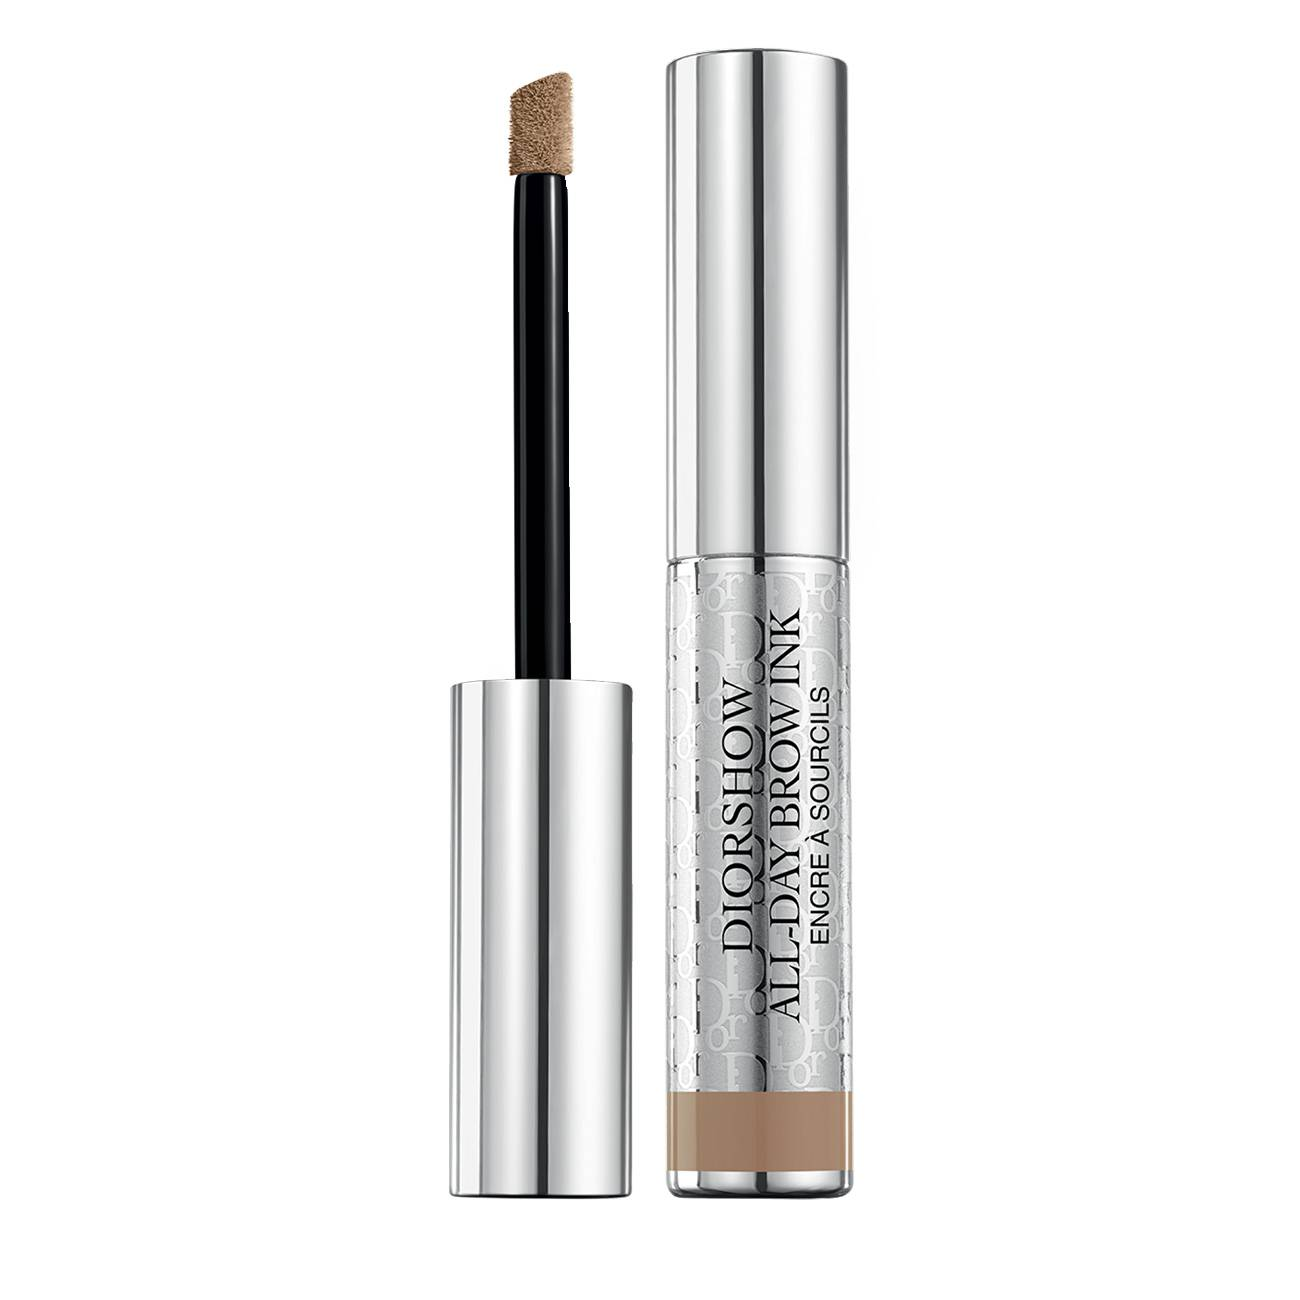 DIORSHOW ALL-DAY BROW INK 011 4ml imagine produs